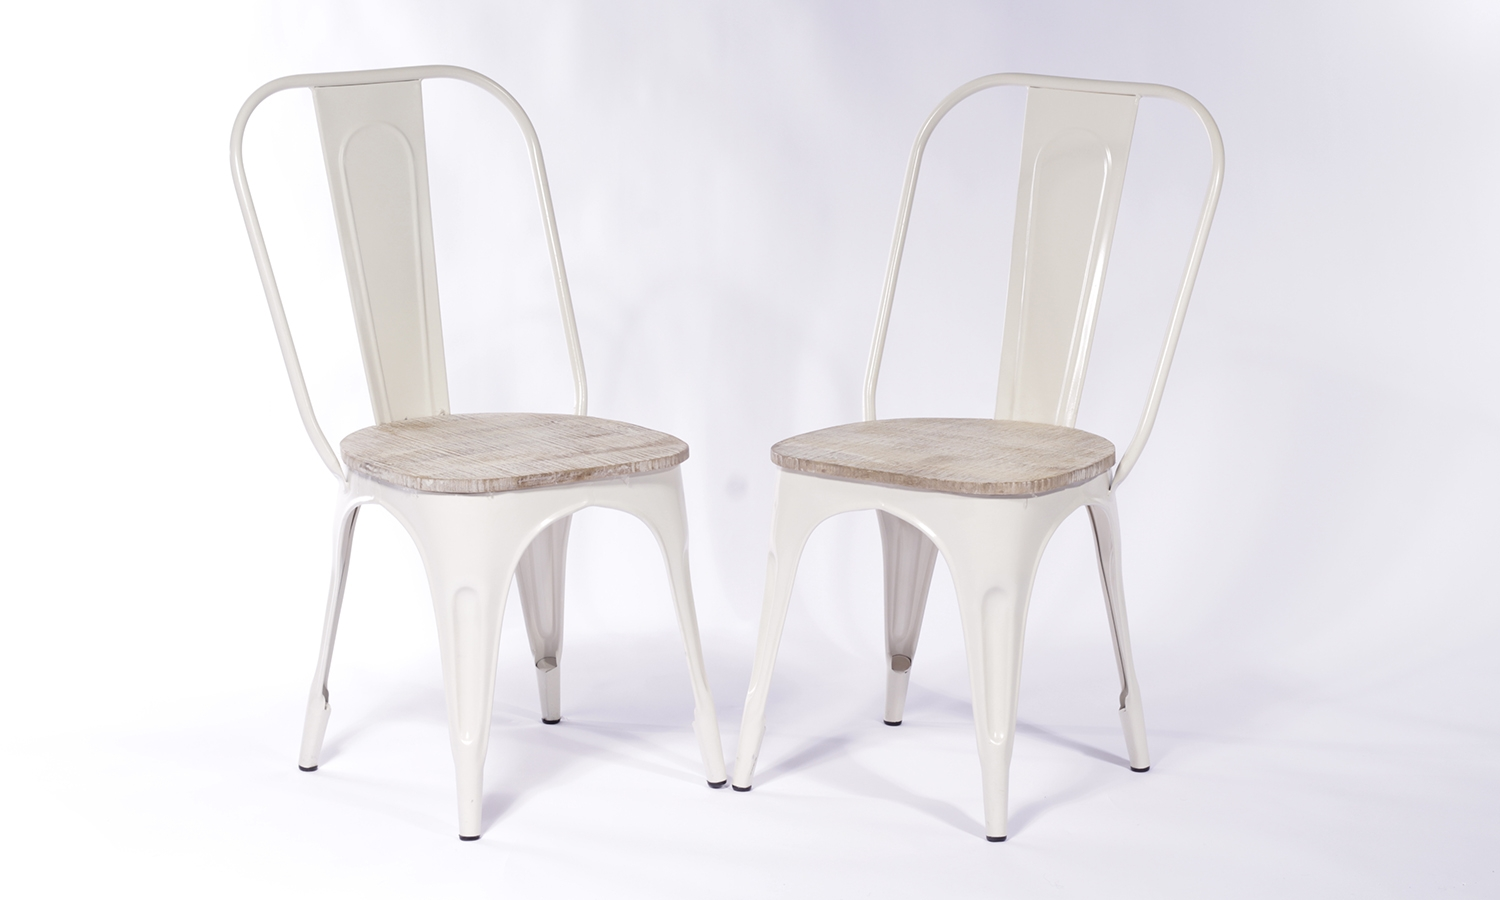 2 X Urban Deco Industrial White Iron Metal Dining Chair